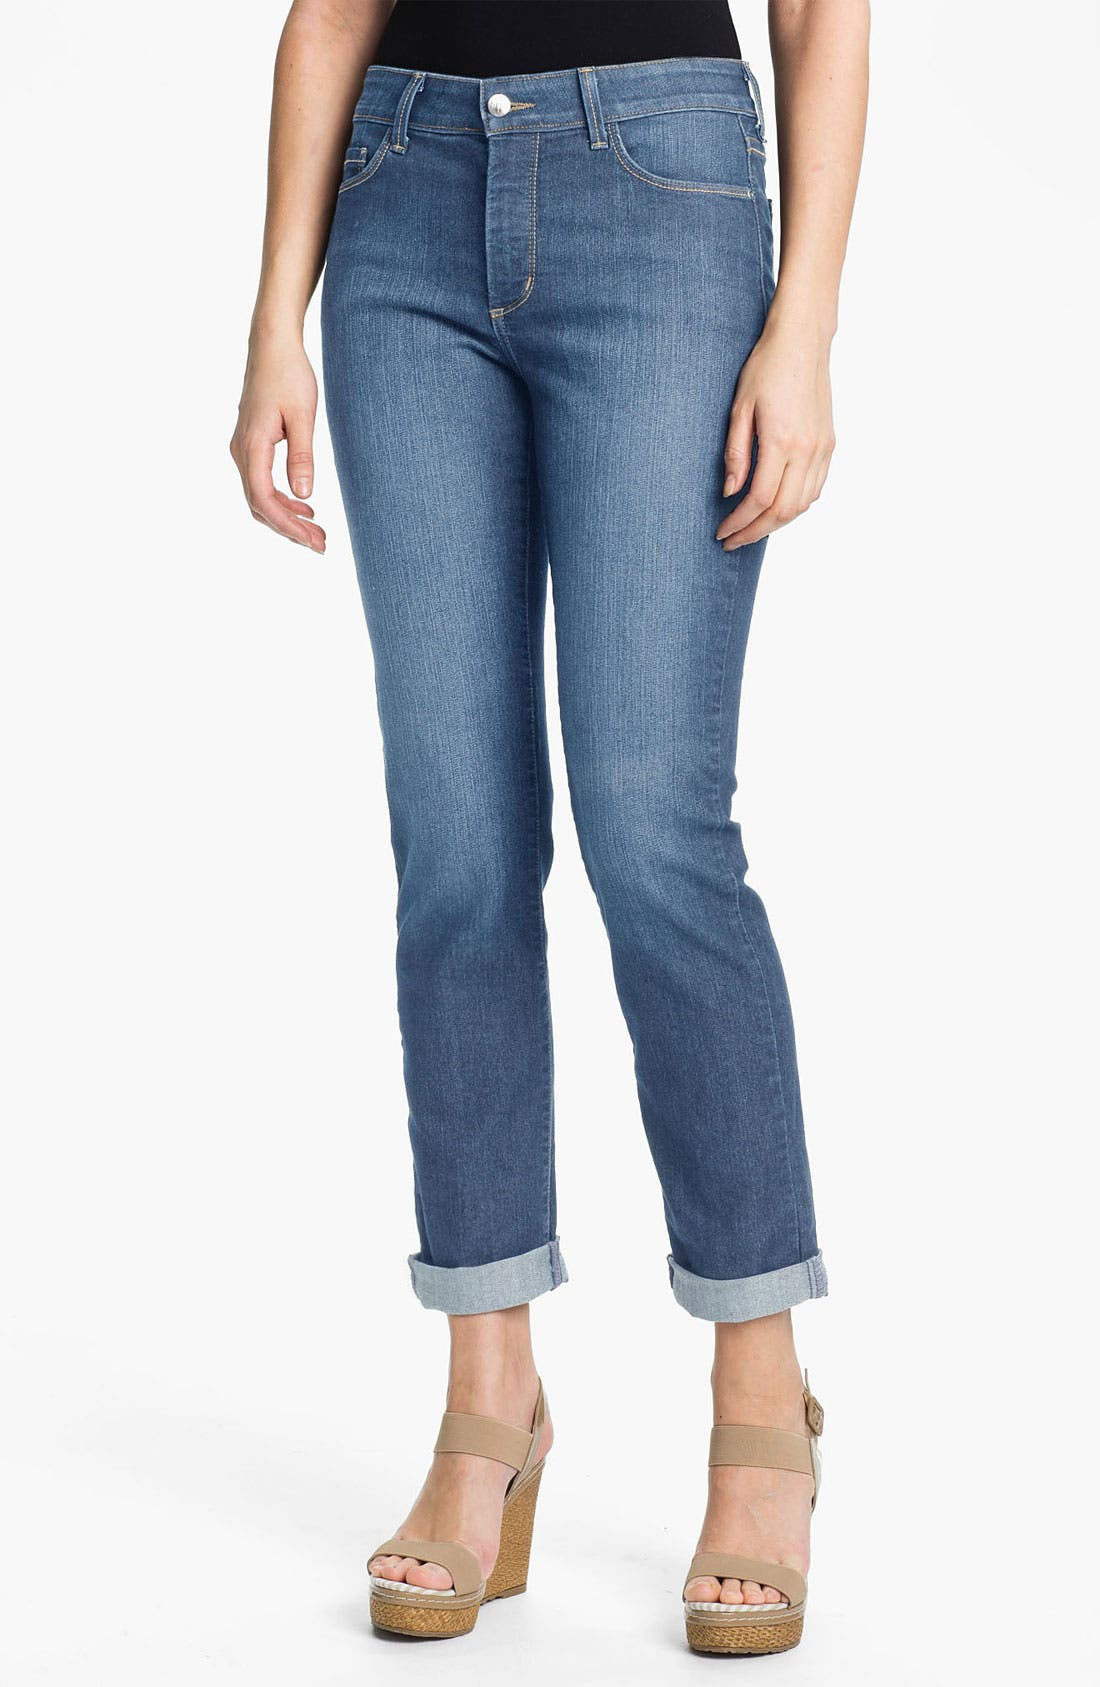 Alternate Image 1 Selected - NYDJ 'Tanya' Cuffed Stretch Boyfriend Jeans